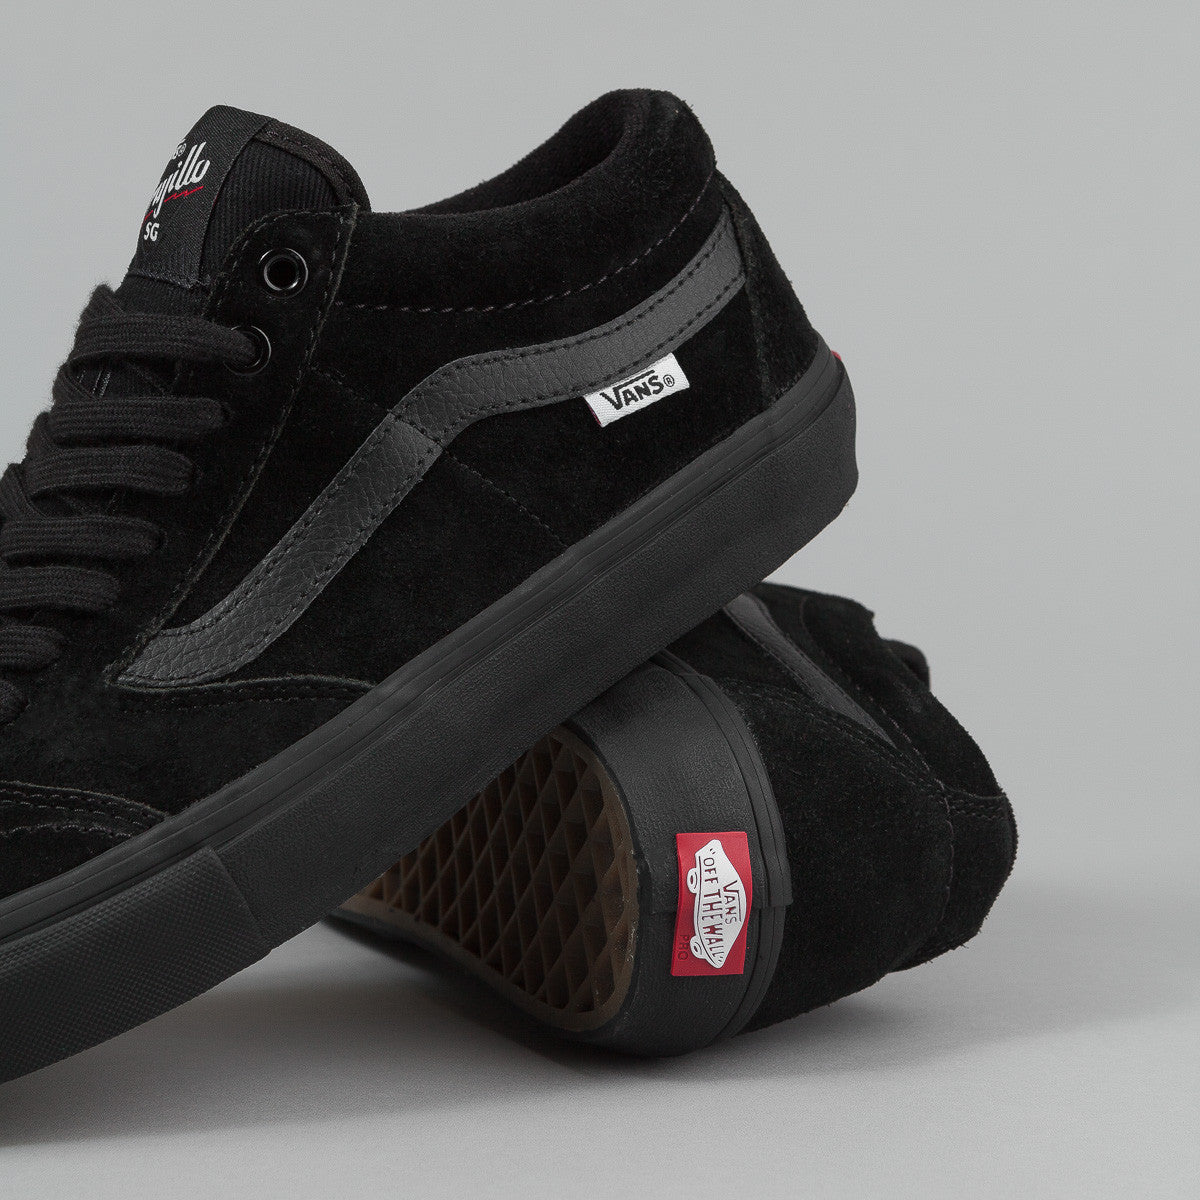 Vans TNT SG Shoes - Blackout